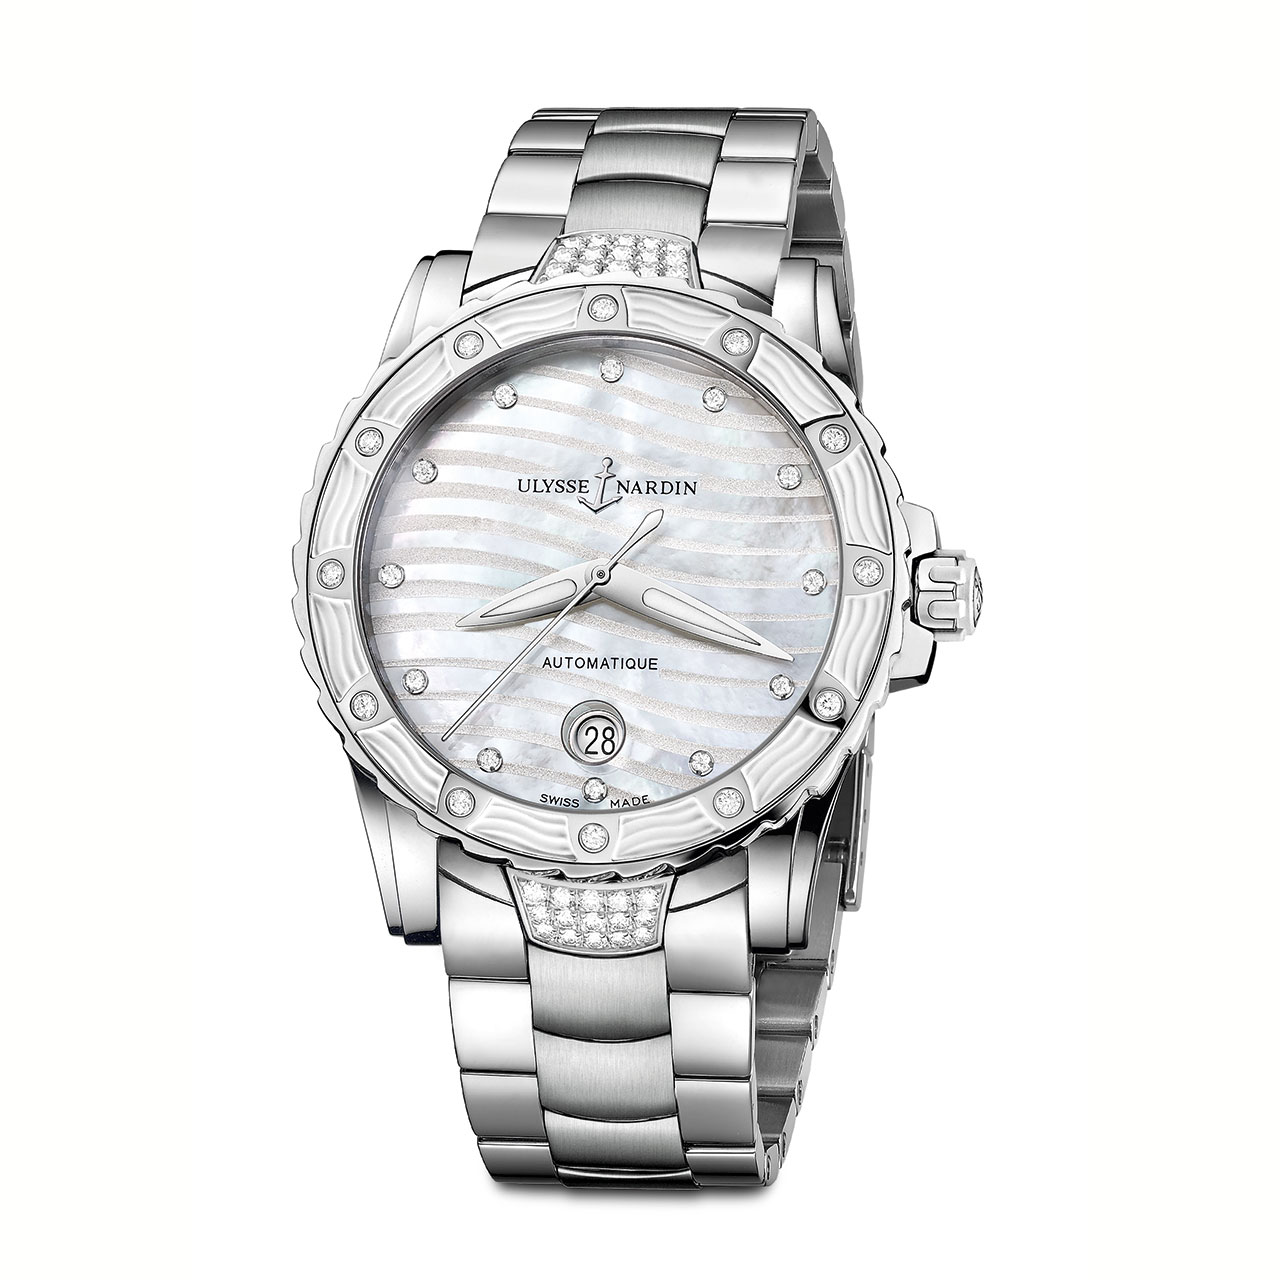 Ulysse Nardin Lady Diver Automatic Watch